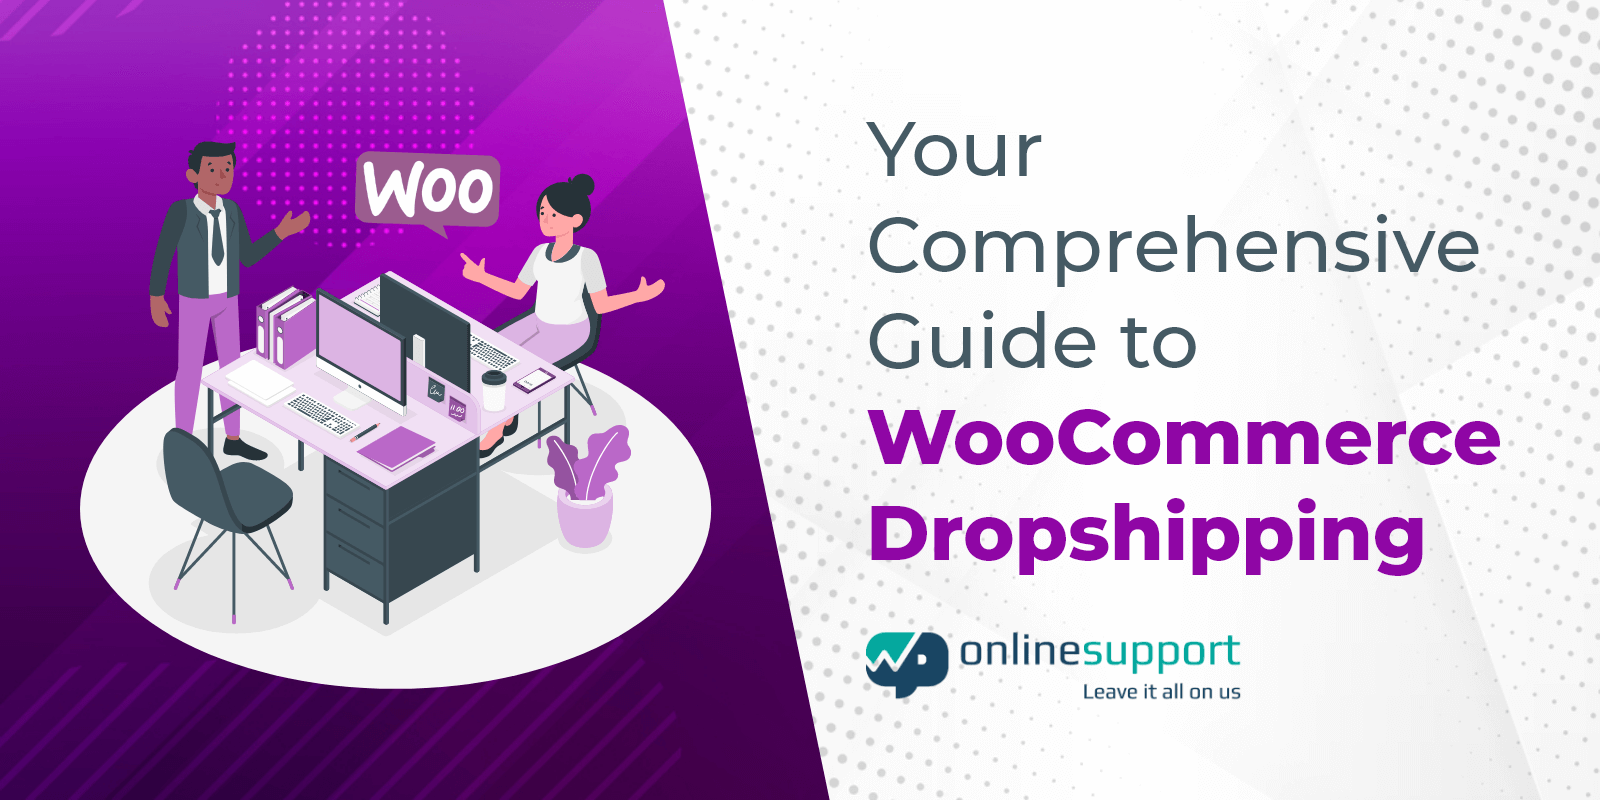 Your Comprehensive Guide to WooCommerce Dropshipping